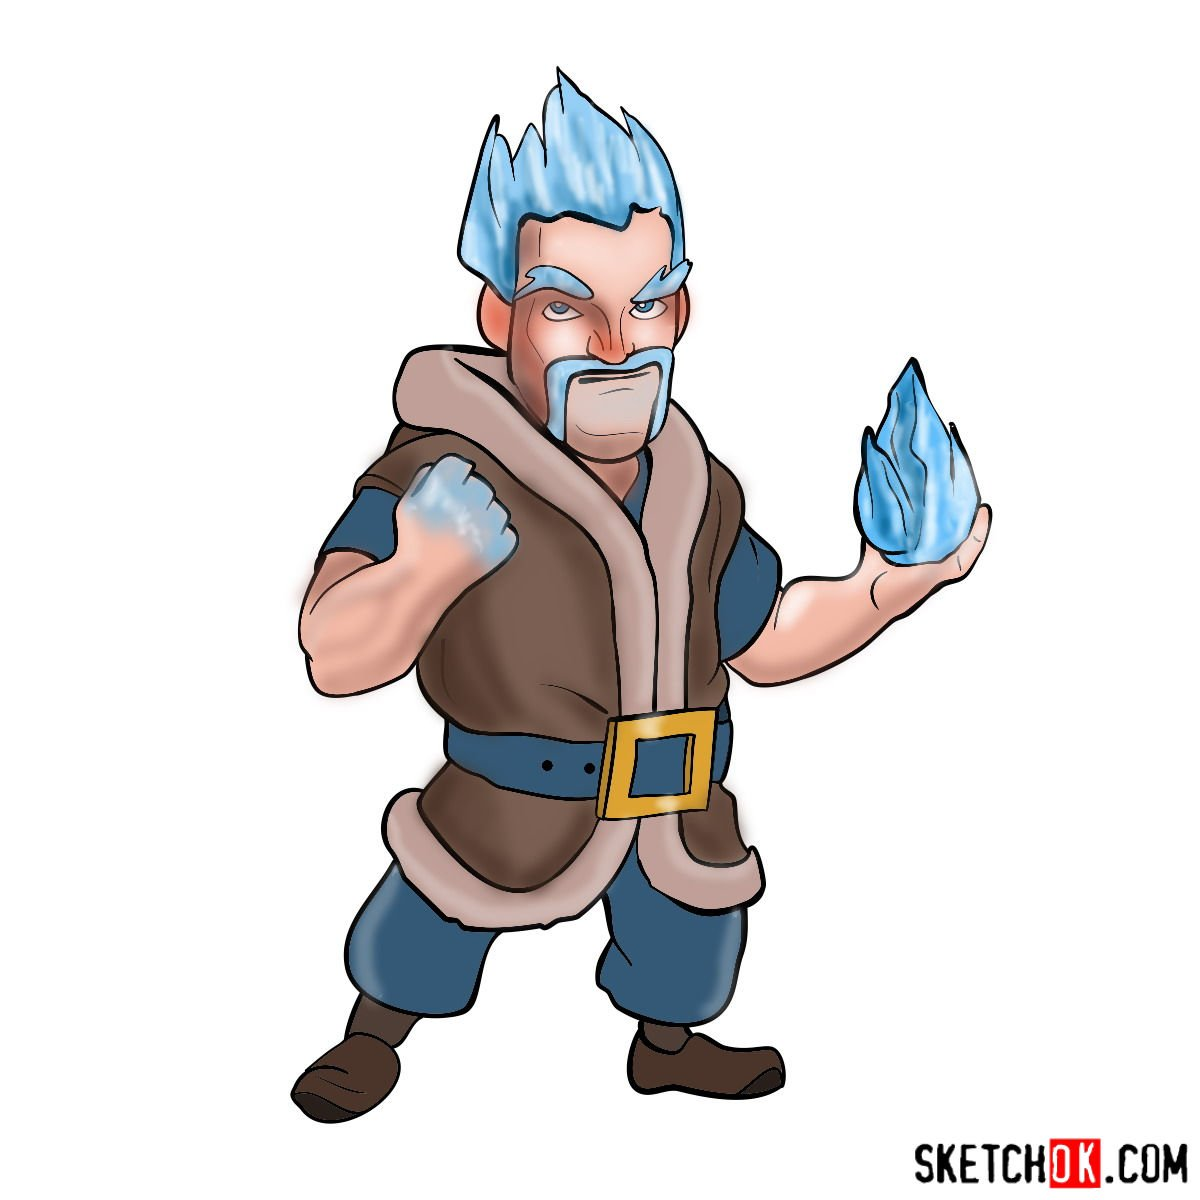 How to draw Ice Wizard from Clash of Clans